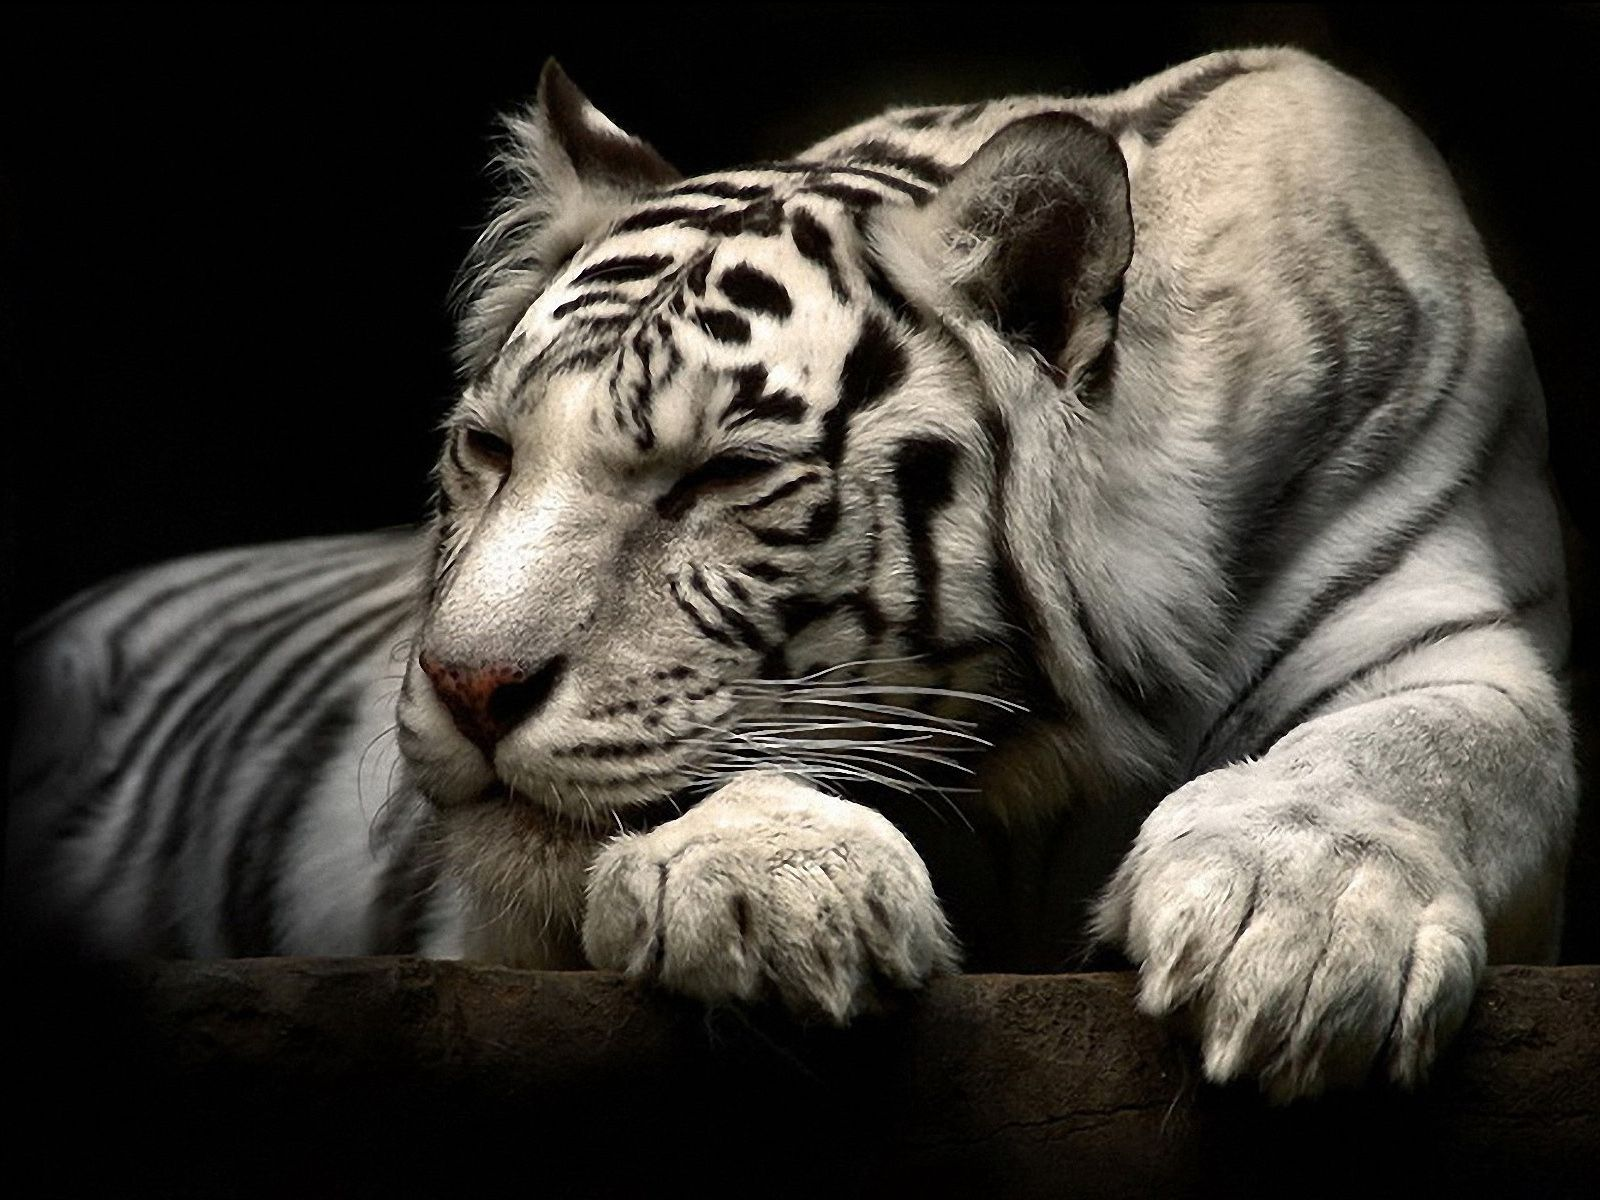 White Tiger Wallpaper Widescreen For Desktop Background 1600x1200 Px 57219 KB